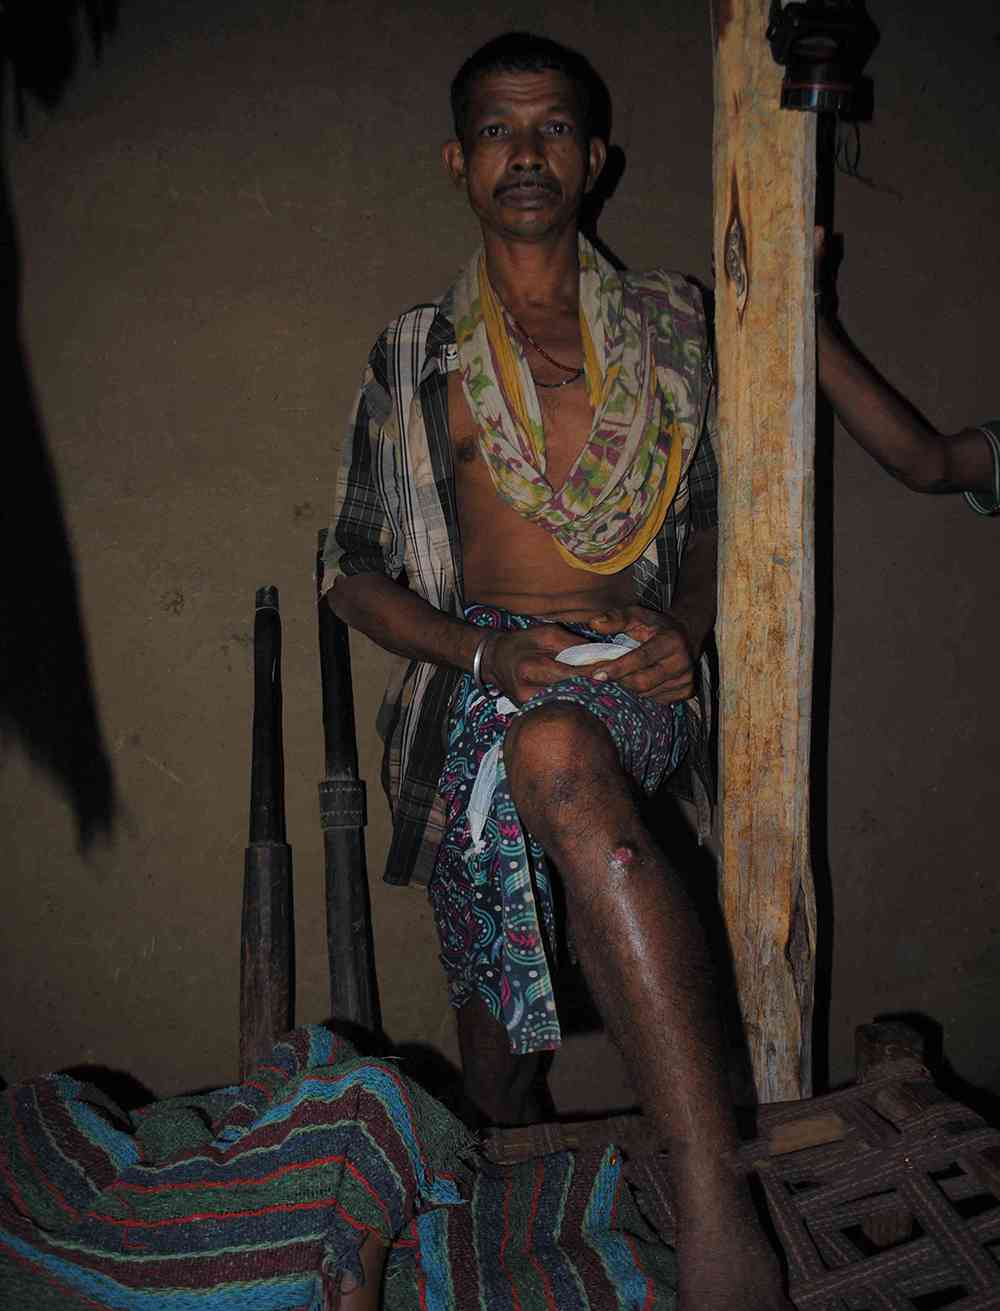 Kadti Suka was wounded in the firing while his son Kadti Ayta was killed. Photo credit: Malini Subramaniam